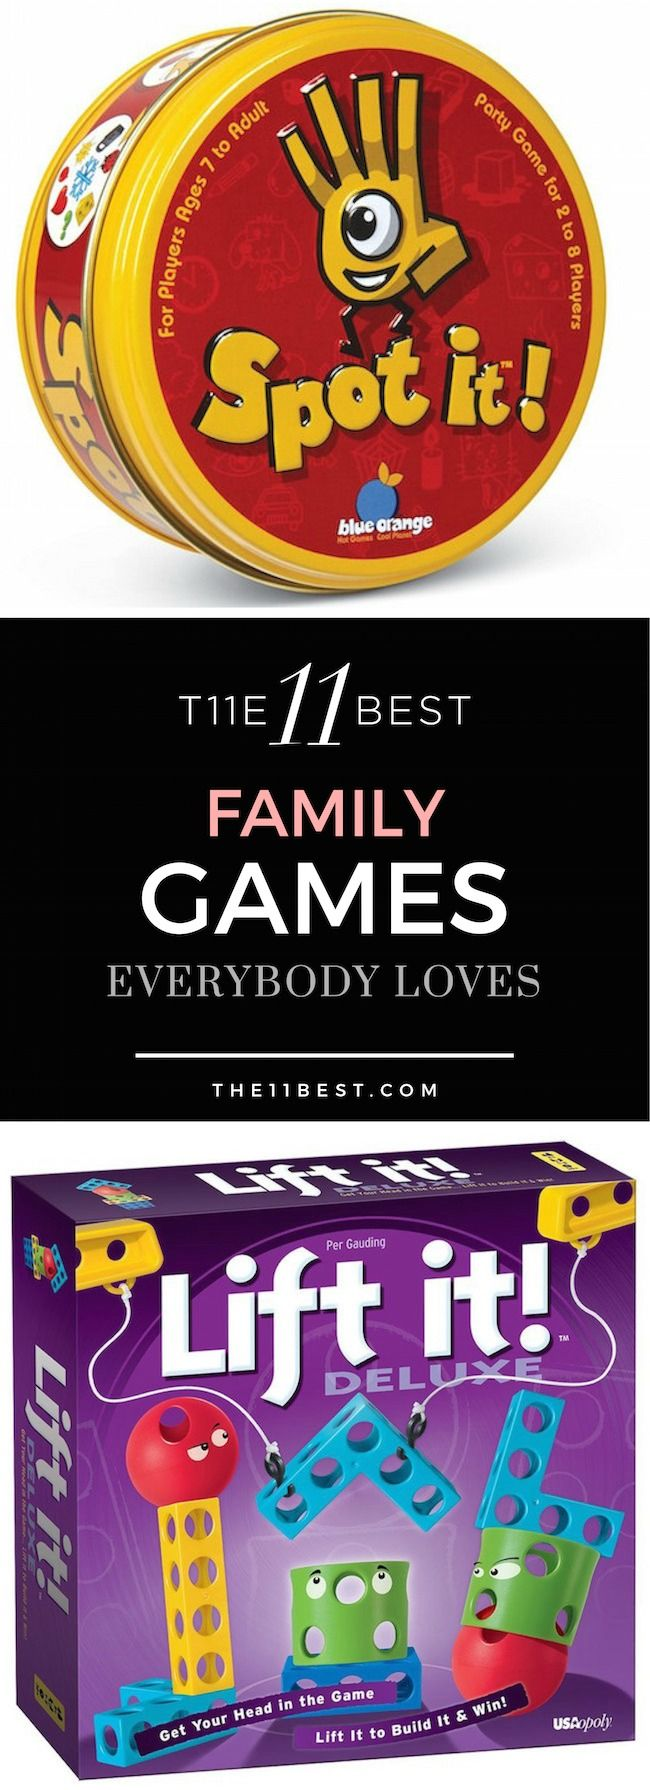 The 11 Best Family Games for get togethers and holidays